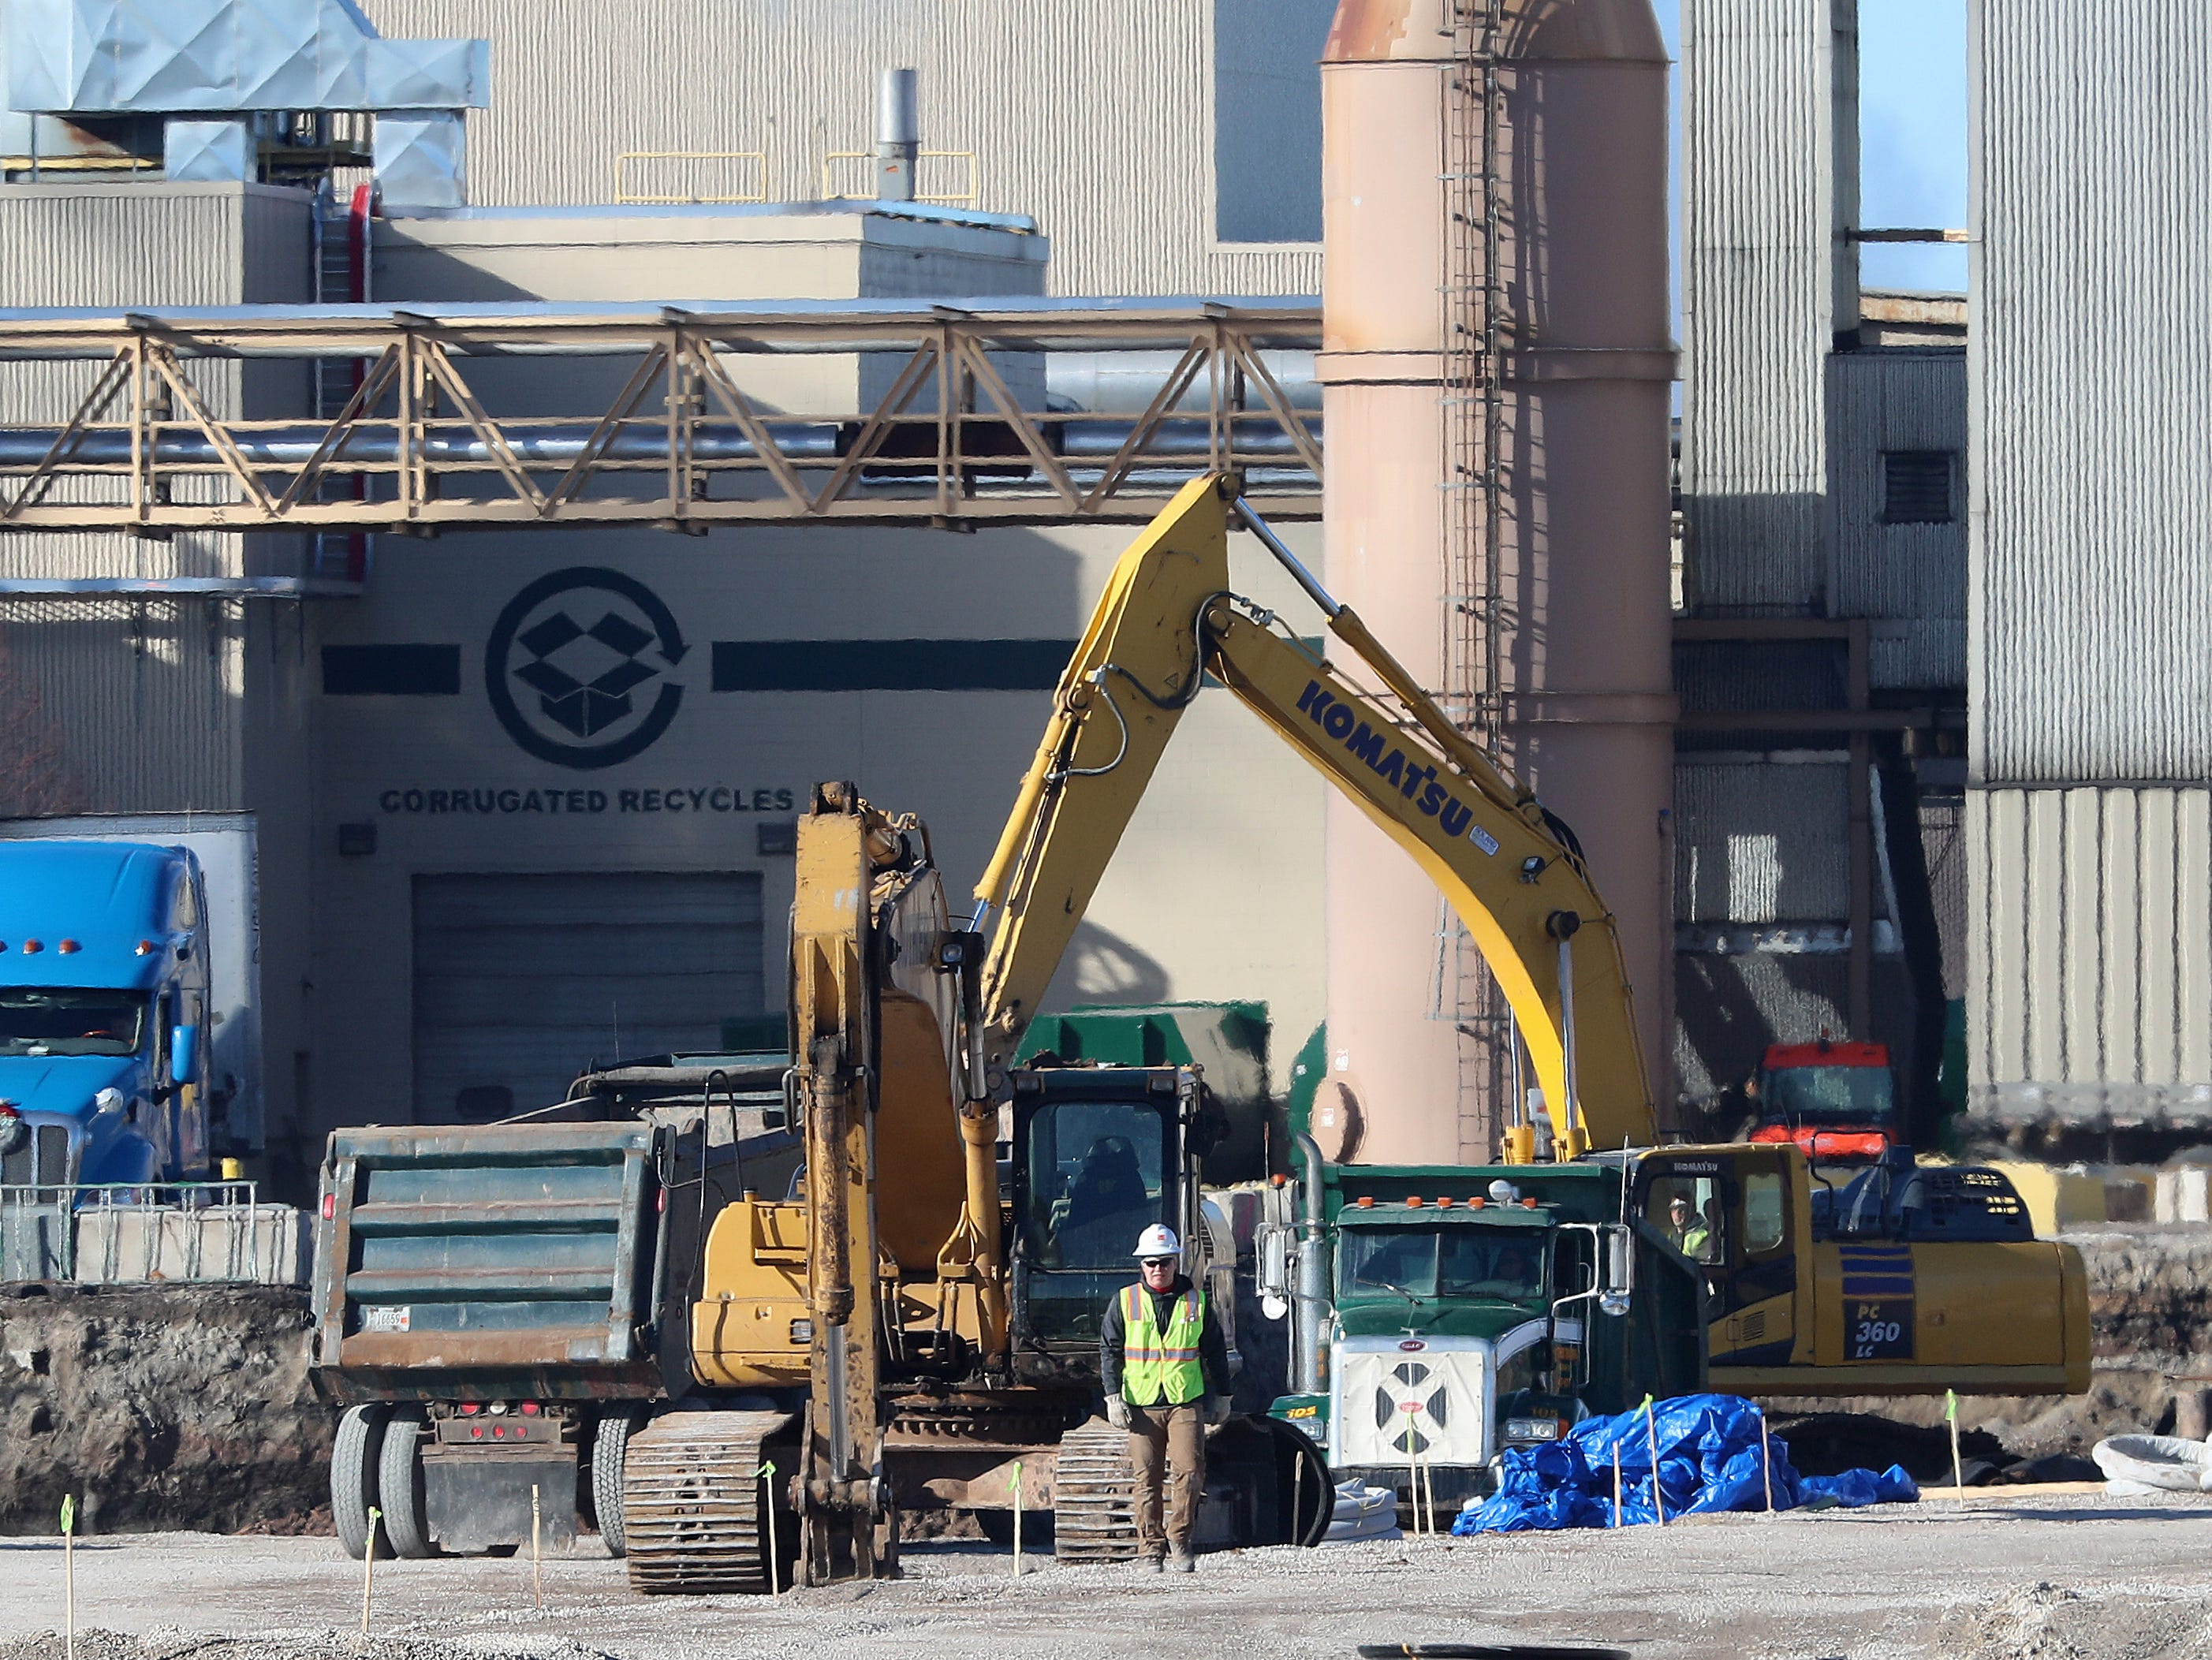 Utility work is underway at the construction site of the Green Bay Packaging mill off Quincy Street in Green Bay. The $580 million plant expansion is expected to retain 600 jobs and add another 200 jobs in the future.